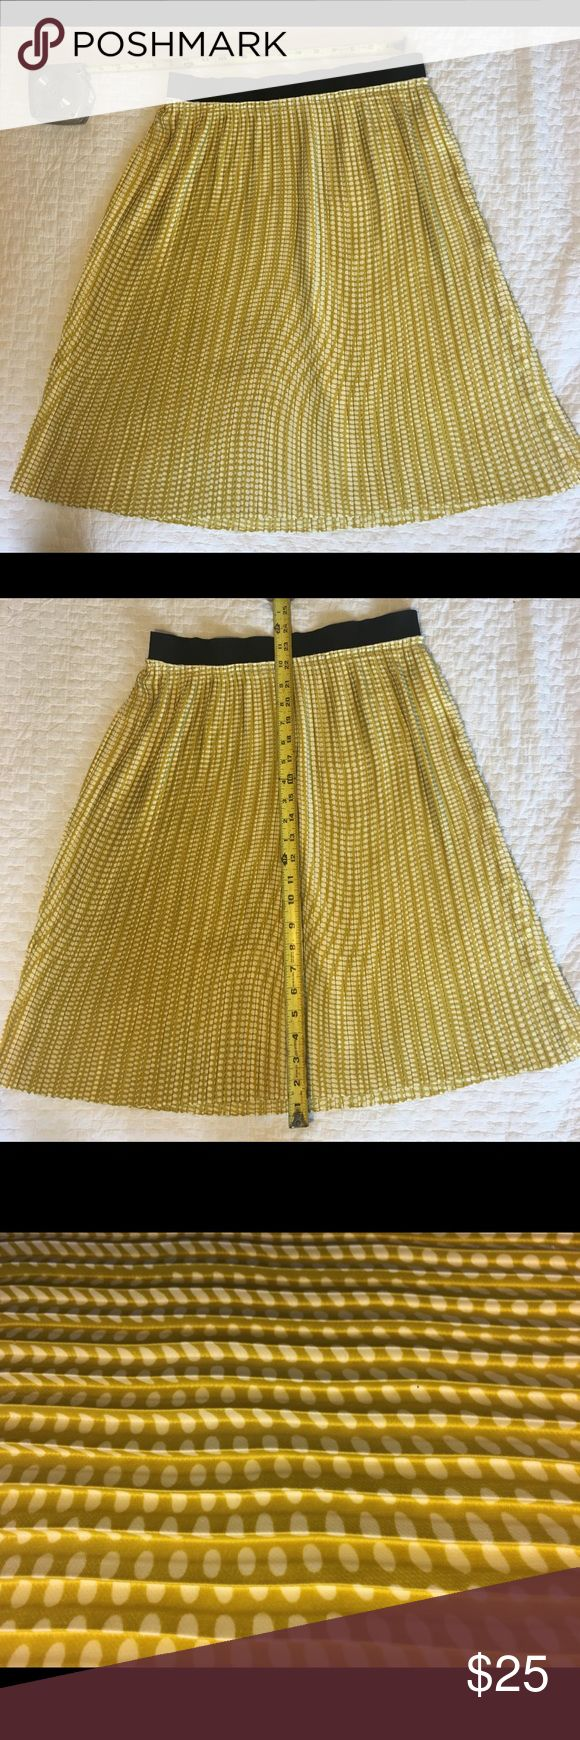 Benetton Box Pleat Skirt Versatile box pleated skirt in yellow with white polkadot. Features black elastic waistband.  Can easily be treated as a neutral to pair with almost anything! EUC Skirts Midi